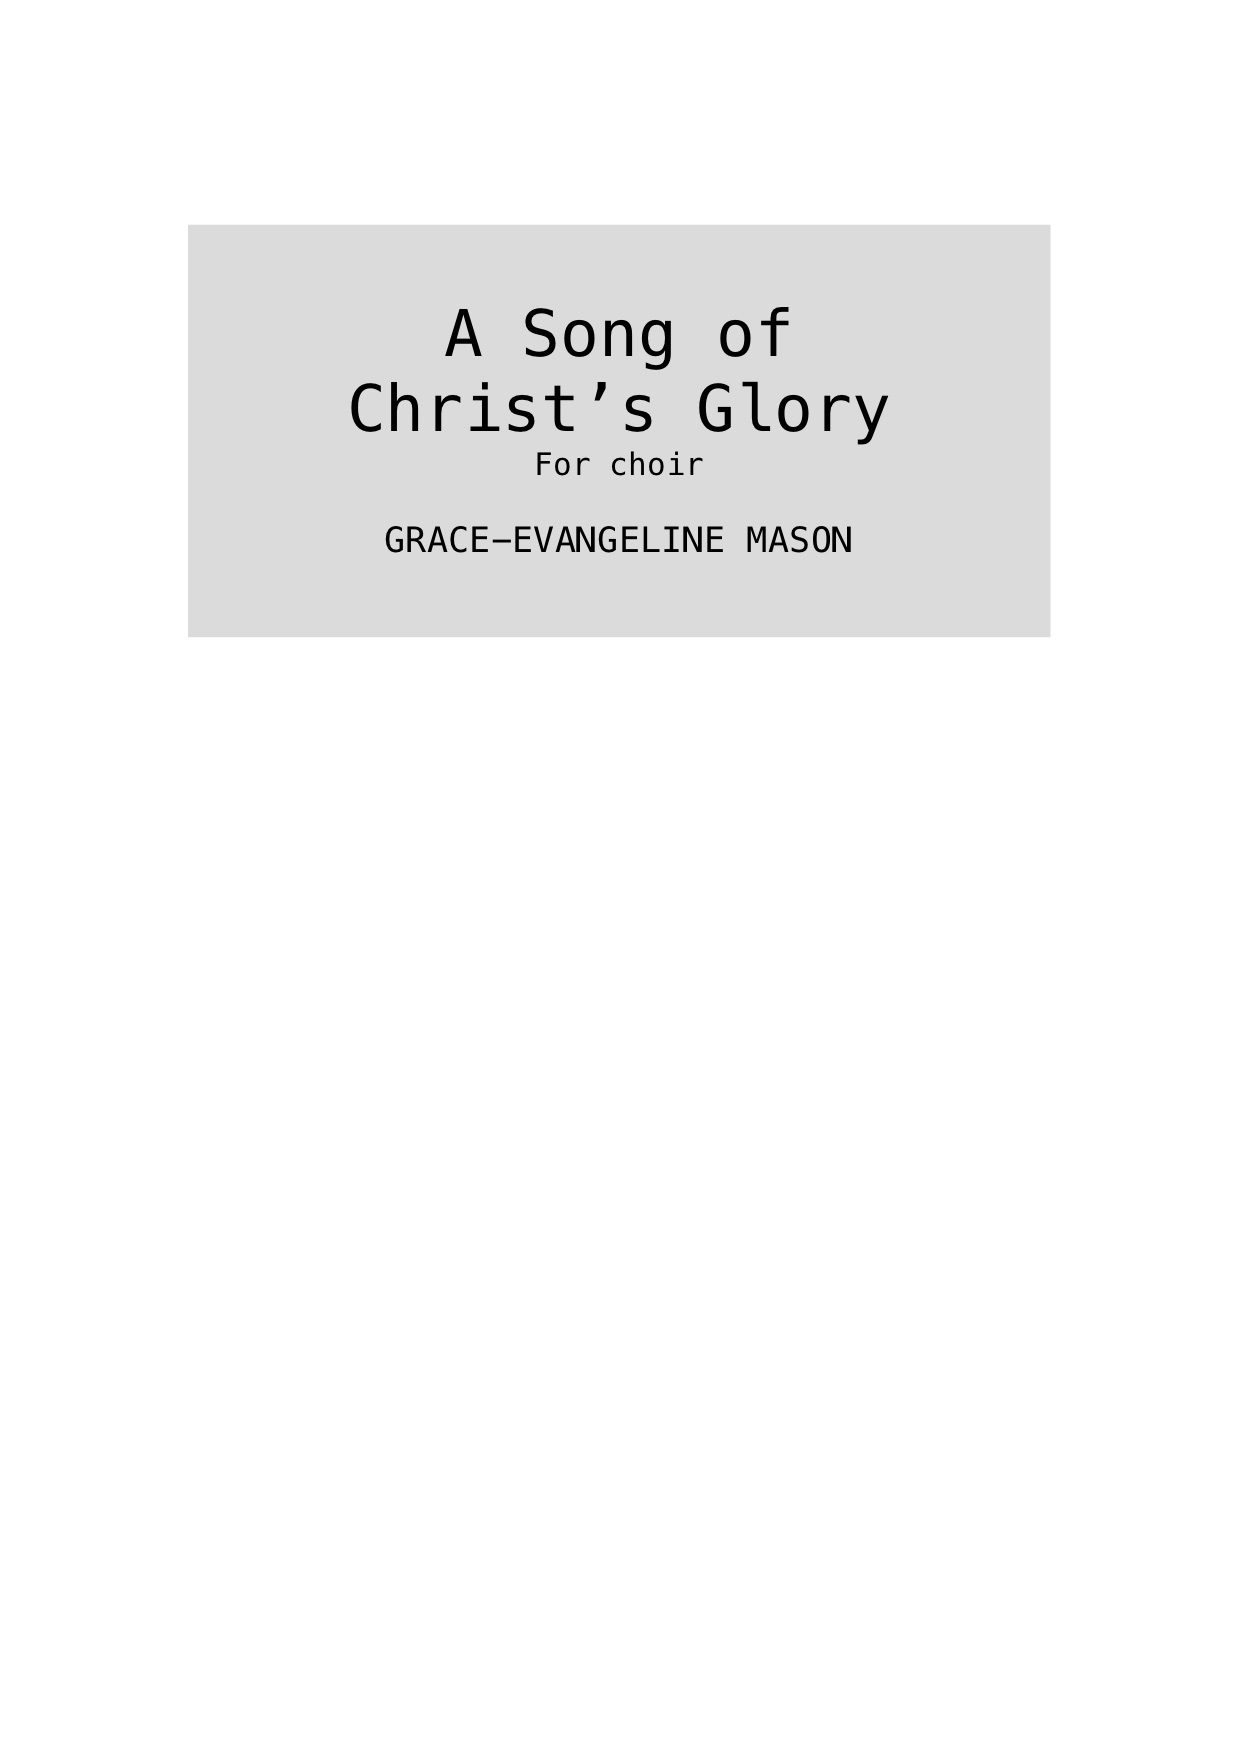 """'A Song of Christ's Glory' (2019) - For SATB choirApprox. Duration: 3'30""""Commissioned by the Chapel Choir of Emmanuel College, Cambridge (03/03/19)A setting of Philippians 2:5-11 from the KJV and Wycliffe translationsPhilippians 2:5-11Let this mind be in you, as in Christ Jesus:He lowered himself, in the form of a servant,He humbled himself, obedient unto death,The death of the cross.Wherefore God hath highly exalted him,And gave to him a name above all names;That at the name of Jesus every knee shall bow,Of things in heaven, and things in earth,And things under the earth;And each tongue shall confess that Jesus Christ is Lord, To the glory of God the Father.- From the KJV and Wycliffe translations©Cover Image: 'Song of Glory' Painting by Grace-Evangeline Mason 2019"""